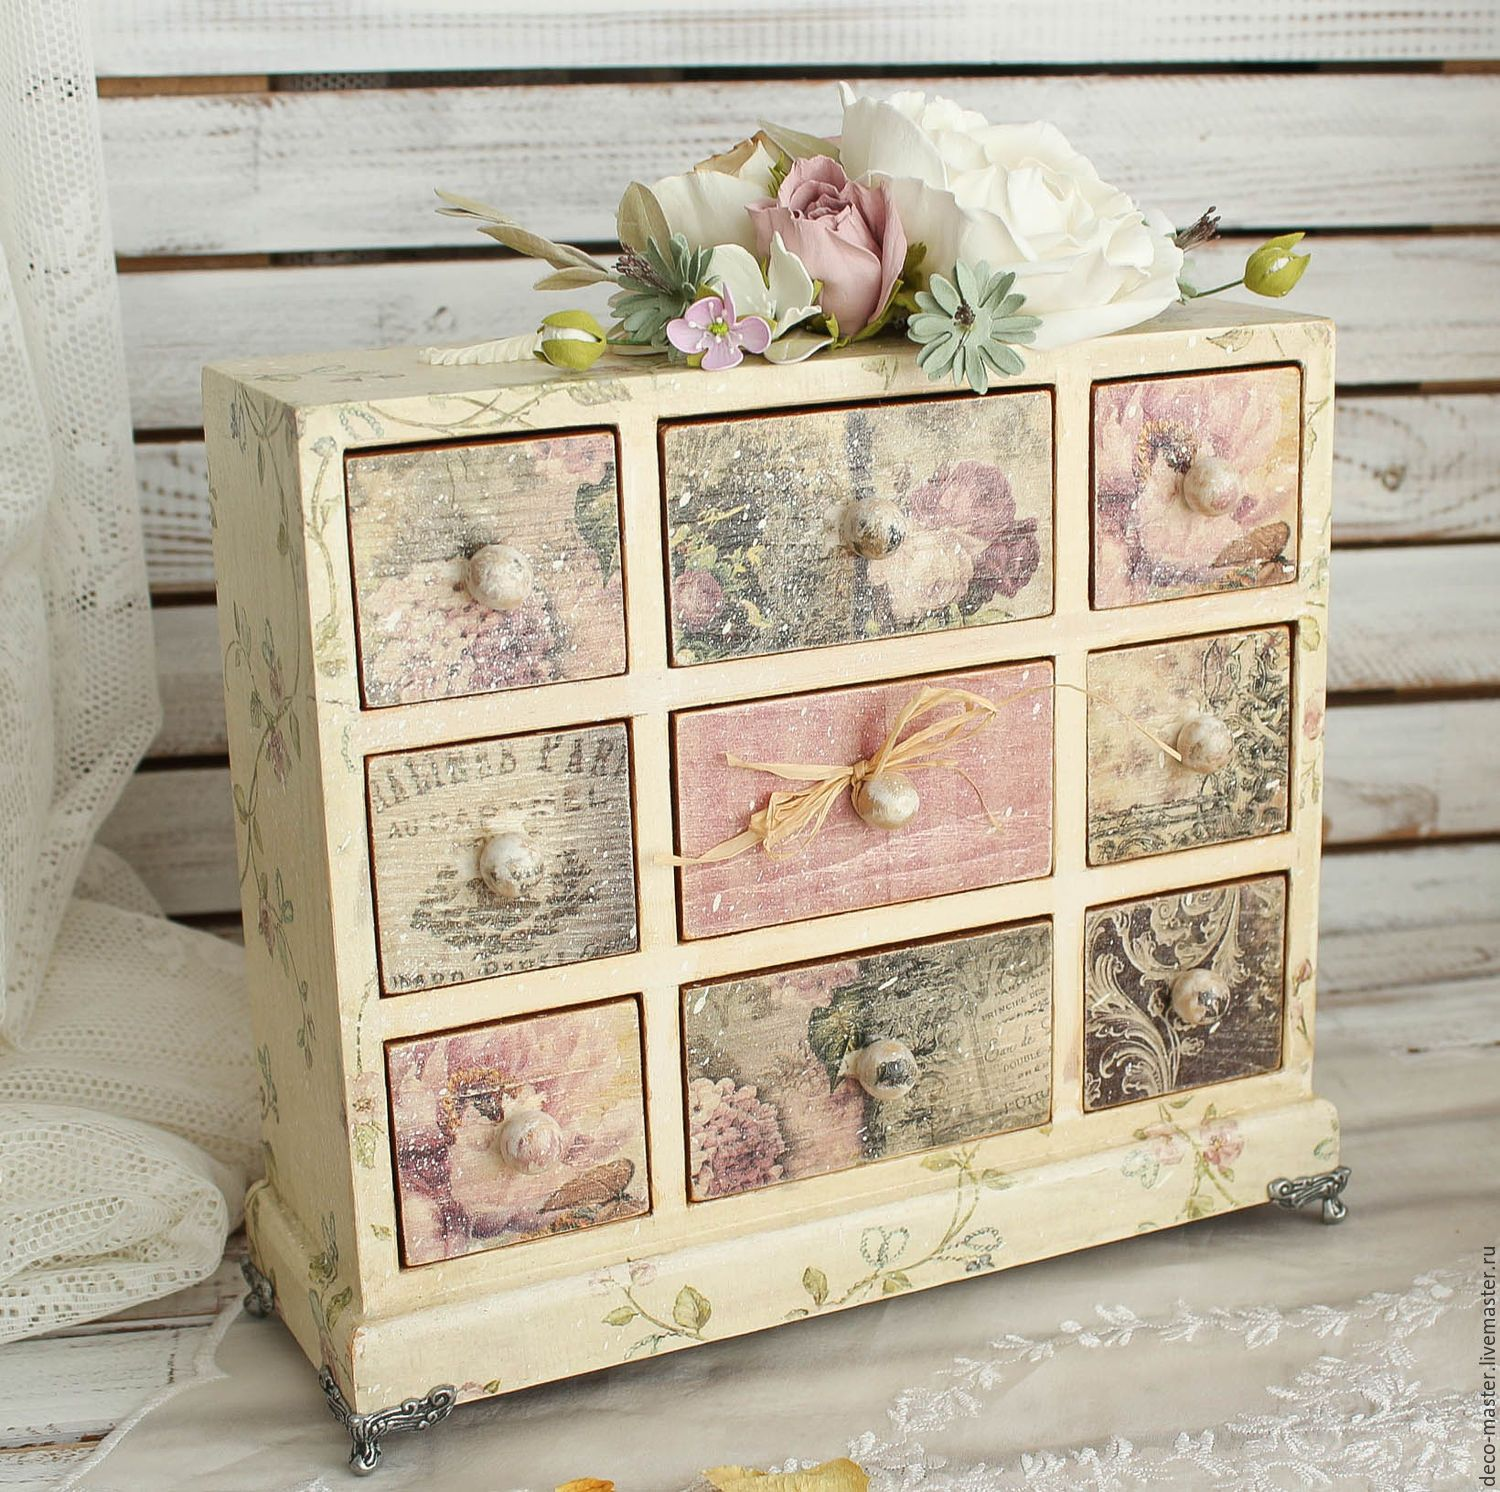 Decoupage Con Servilletas En Muebles Small Cabinet With Decoupage Drawers Painted Furniture